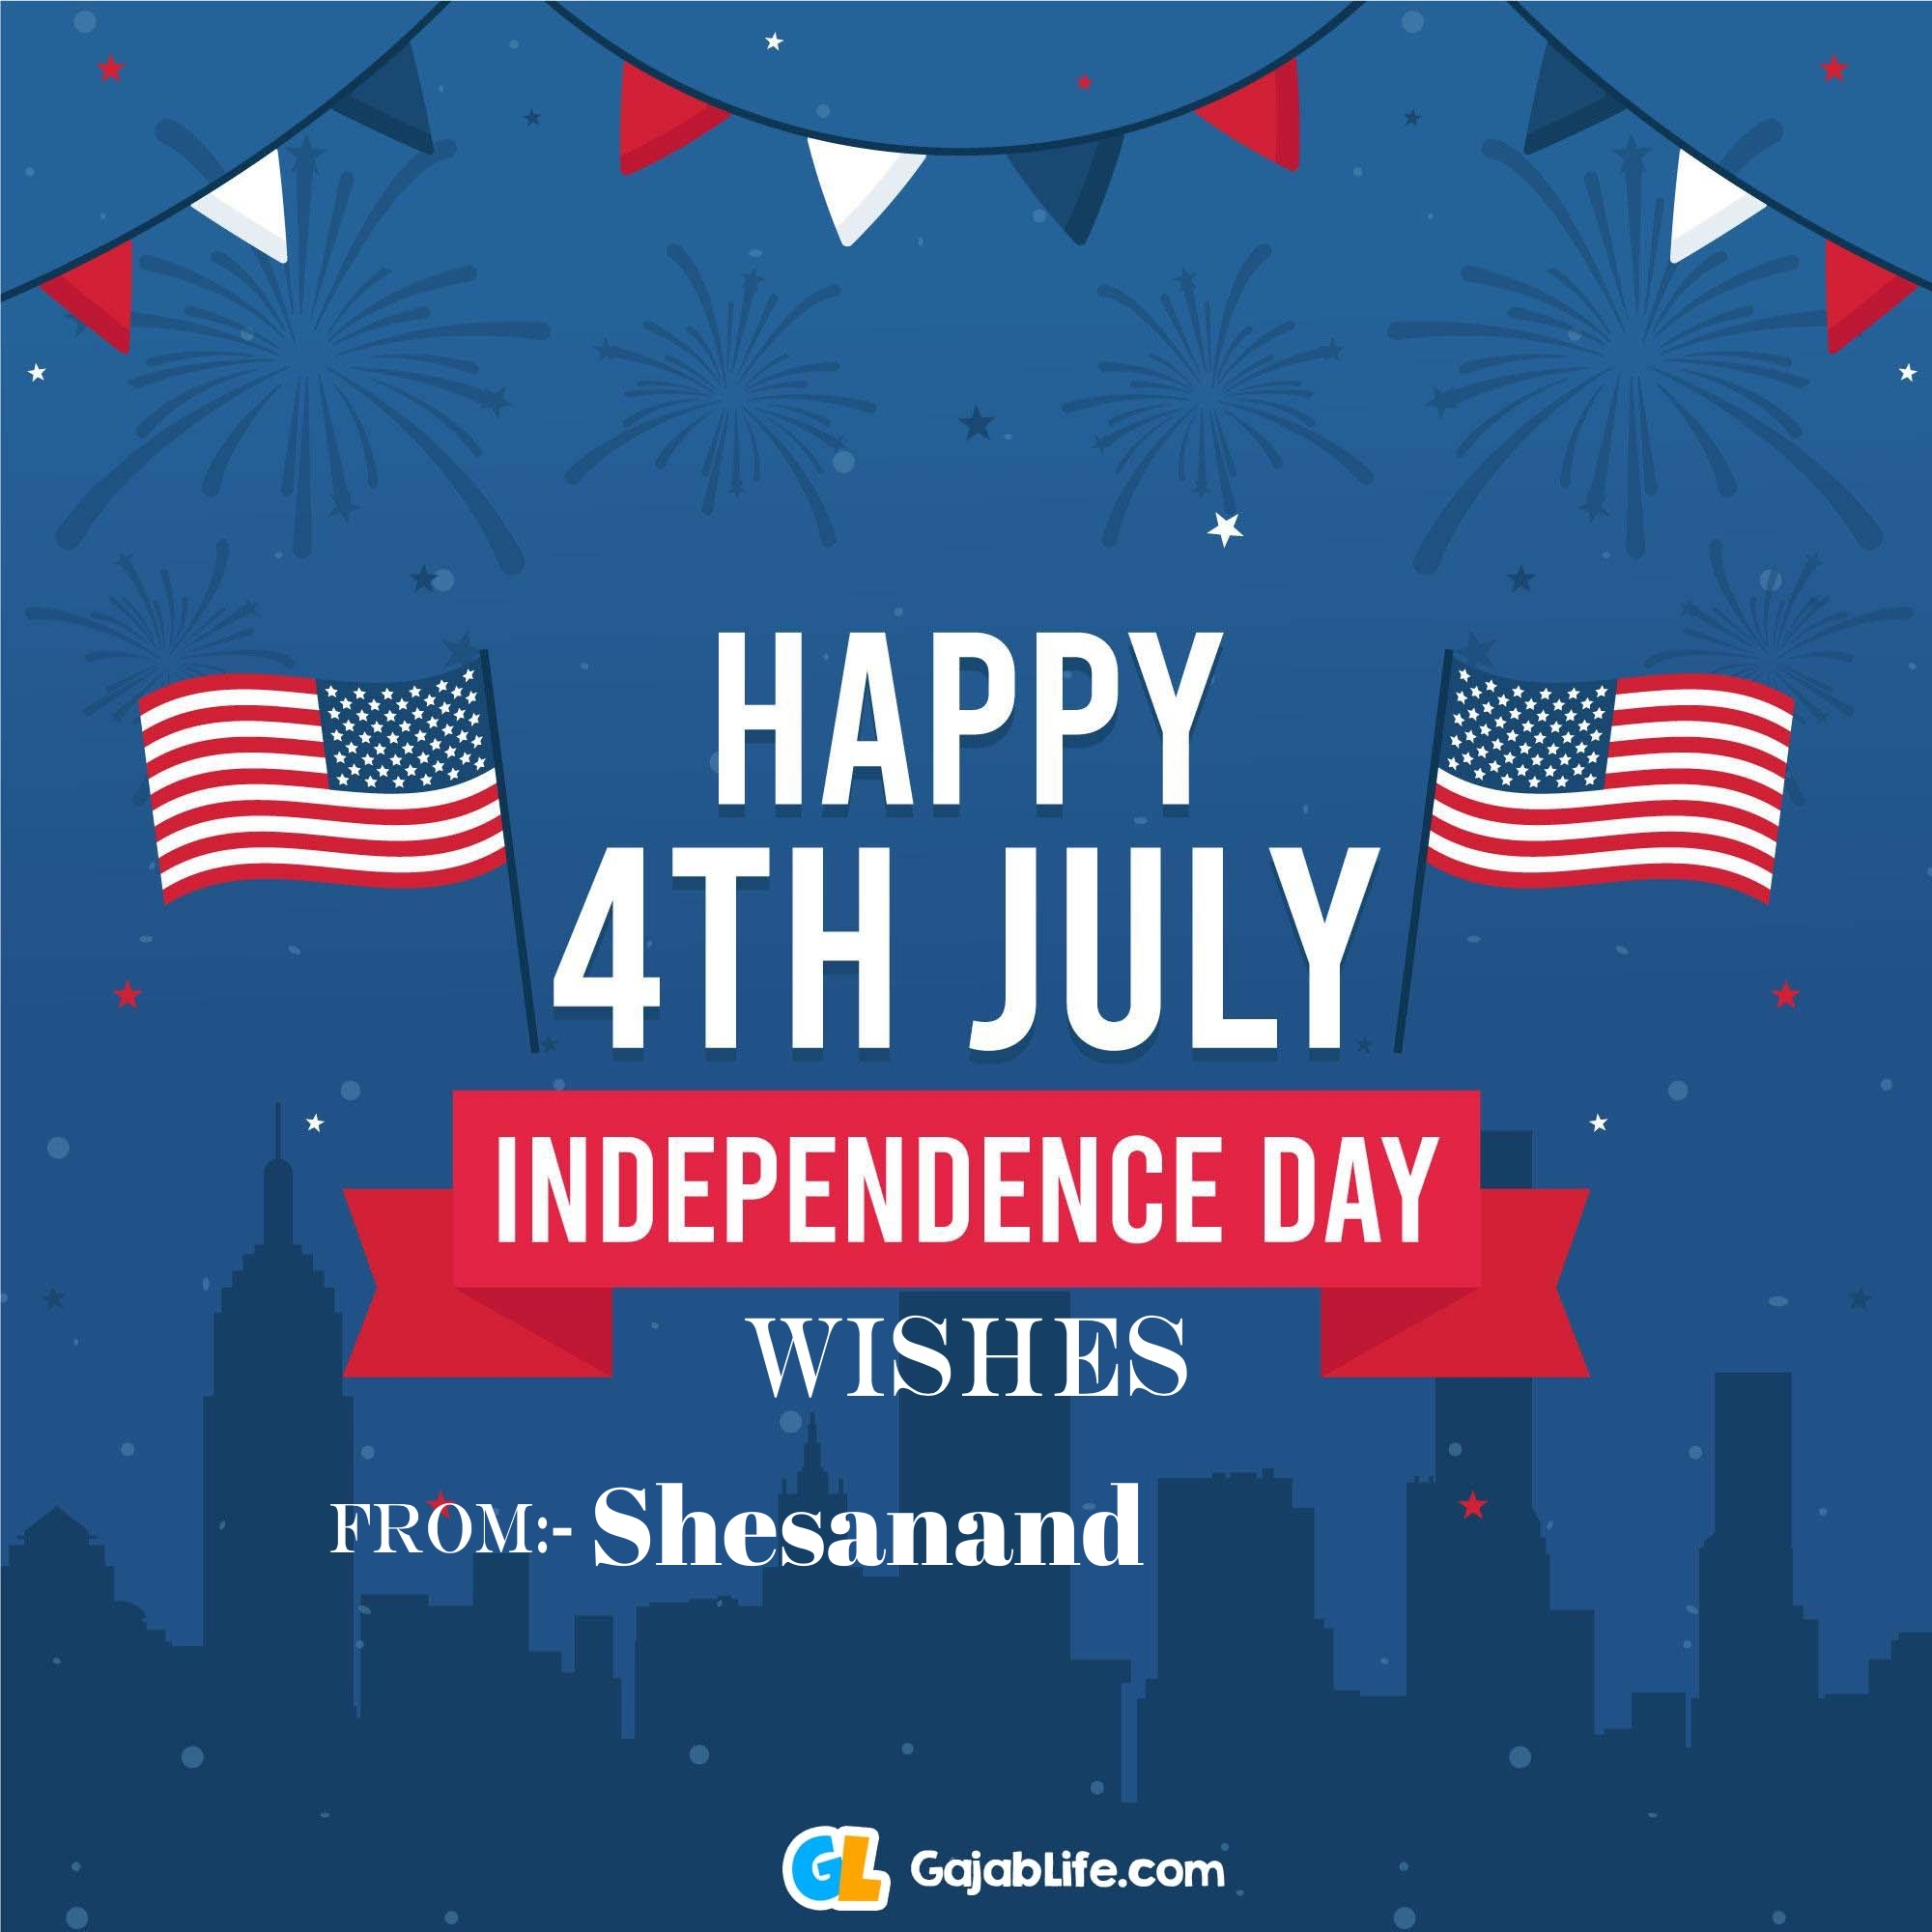 Shesanand happy independence day united states of america images